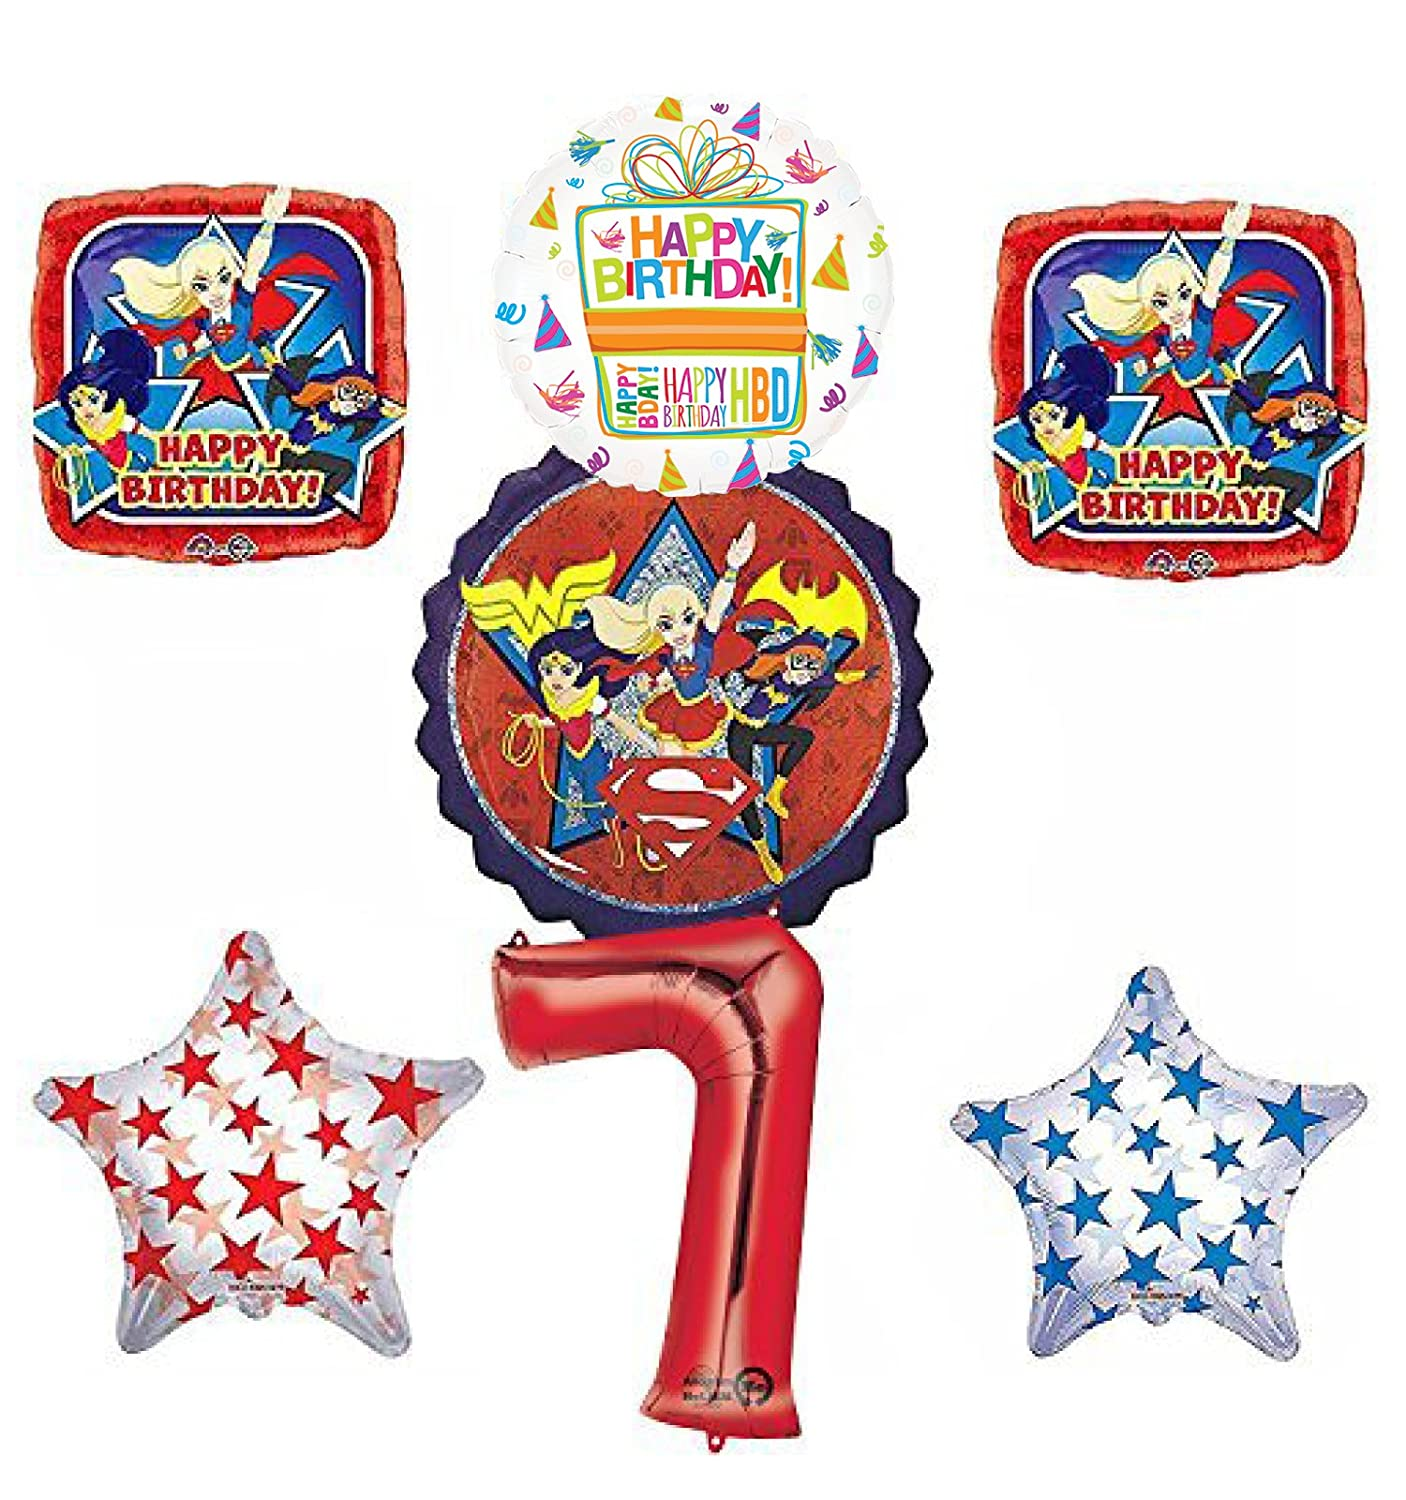 DC Super Hero Girls 7th Birthday Party Supplies and Balloon Decorations   B06XCKFFD6